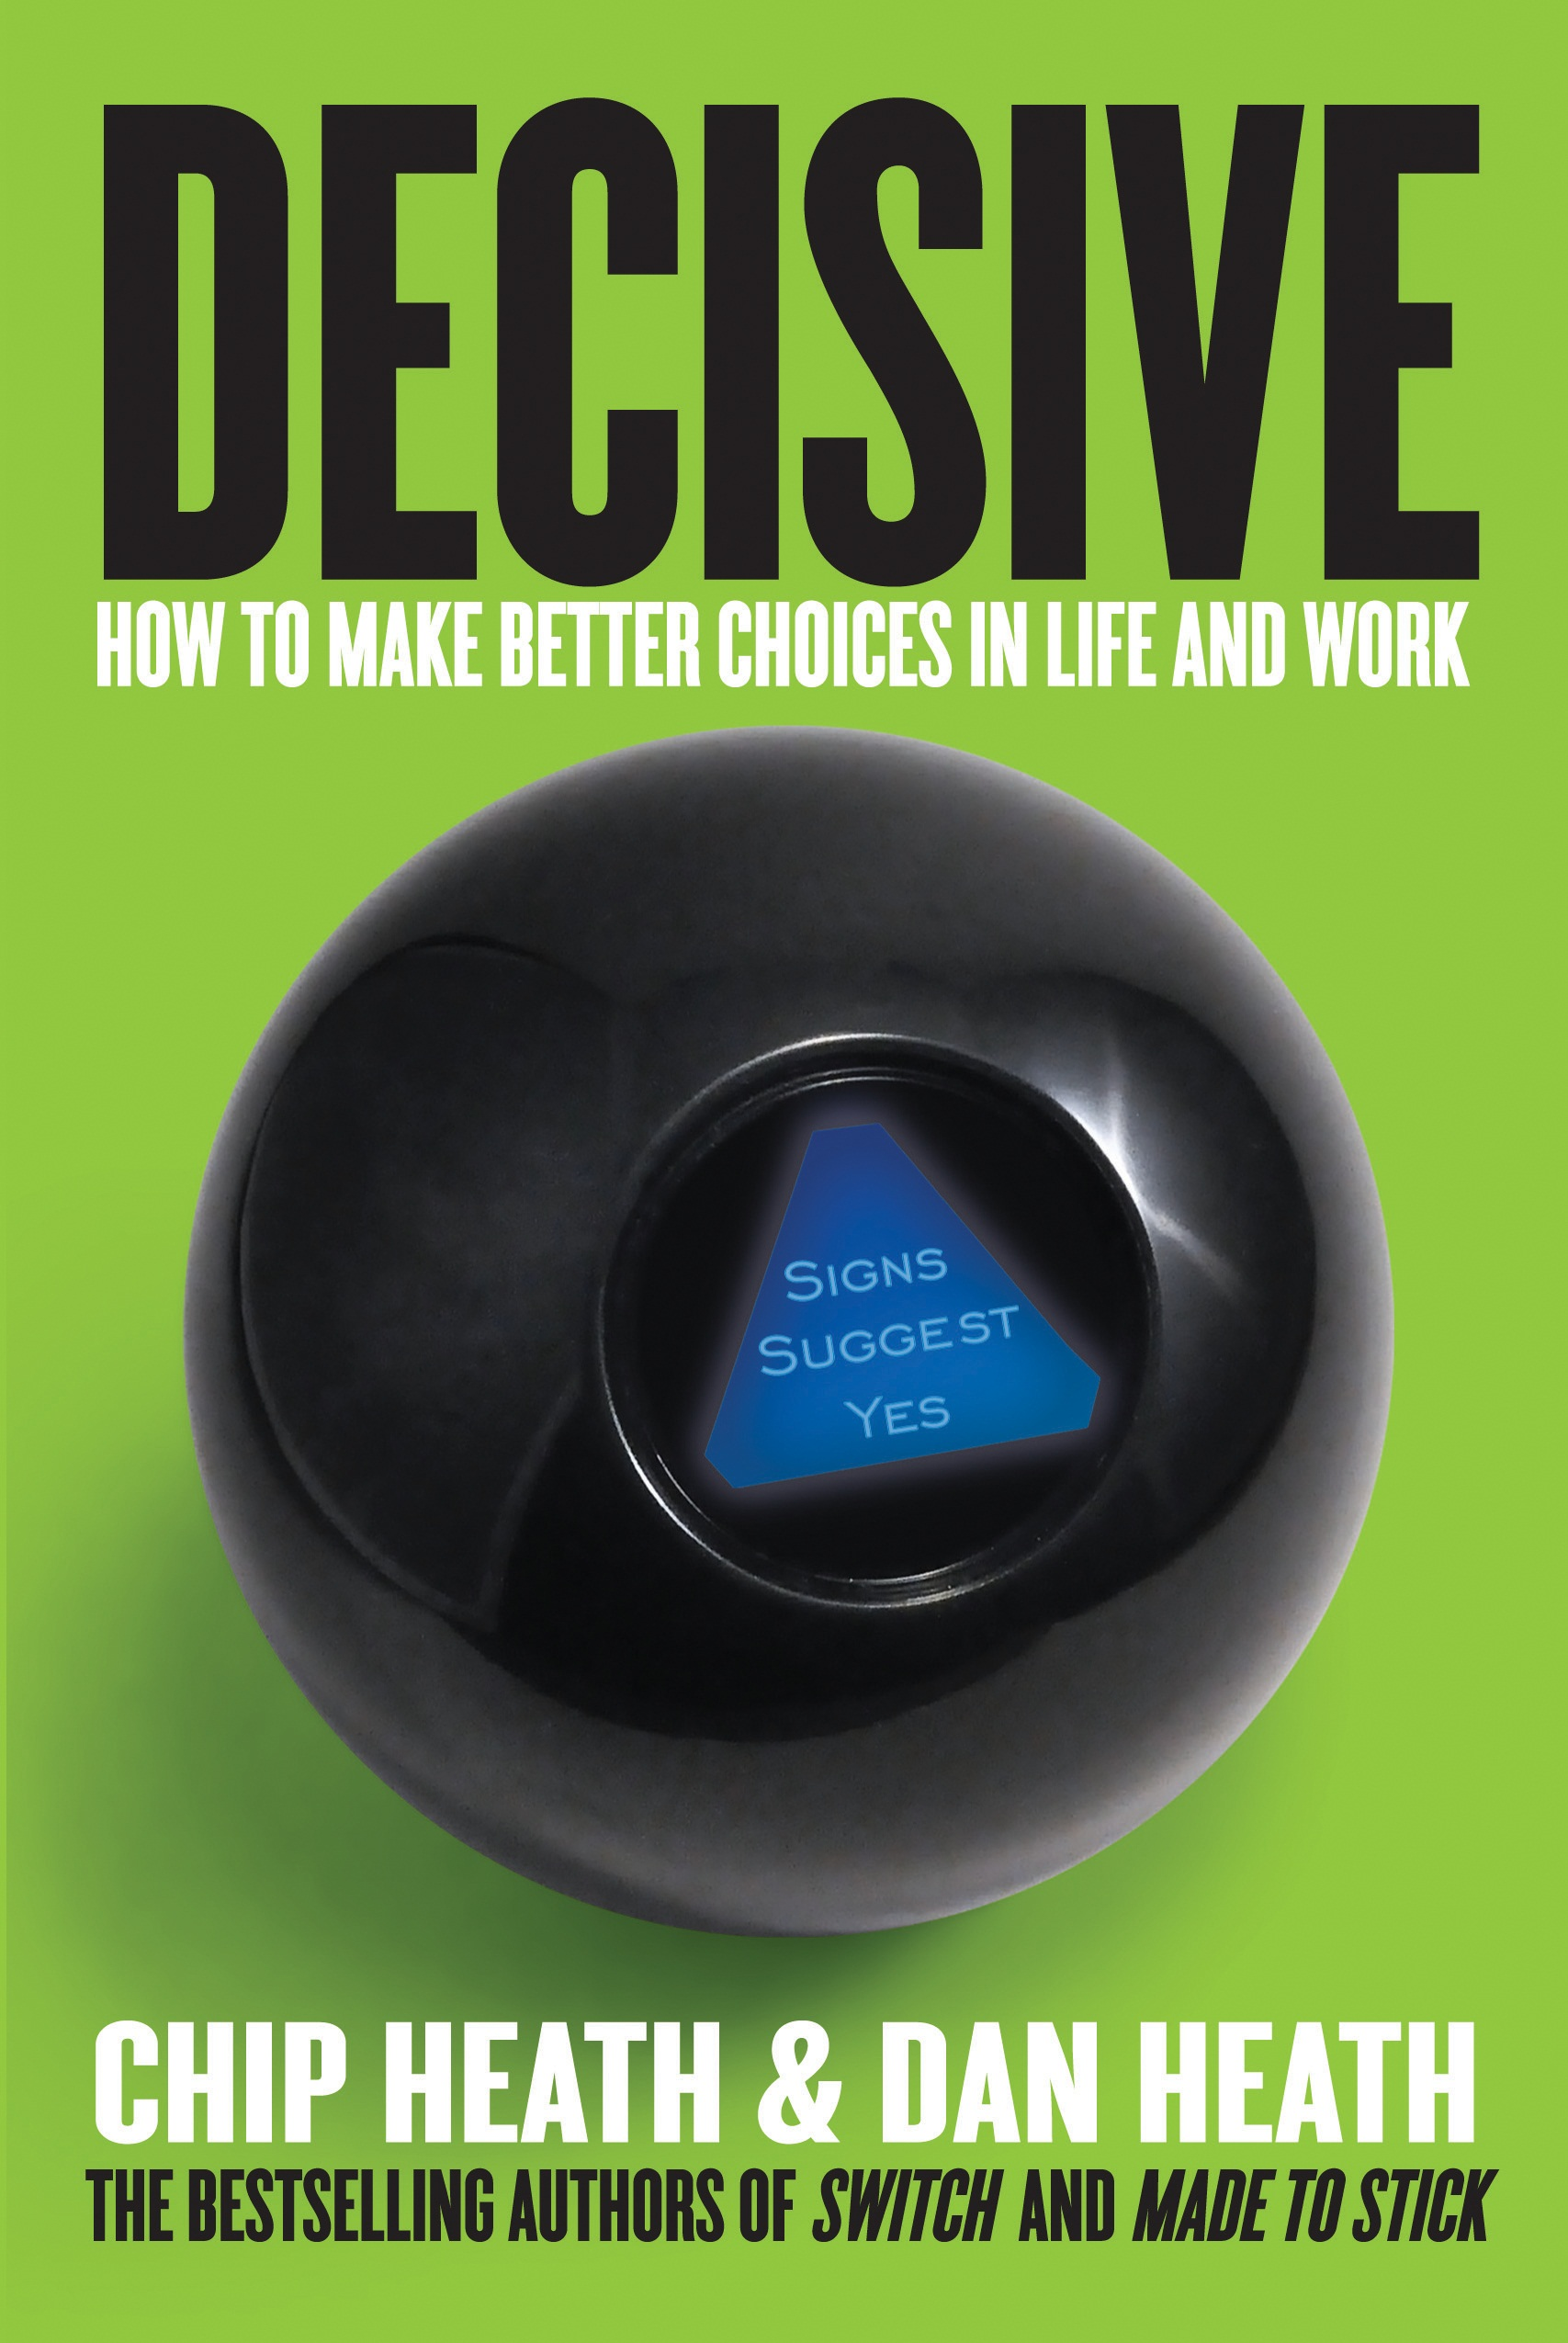 decisive-author-chip-heath-dan-heath